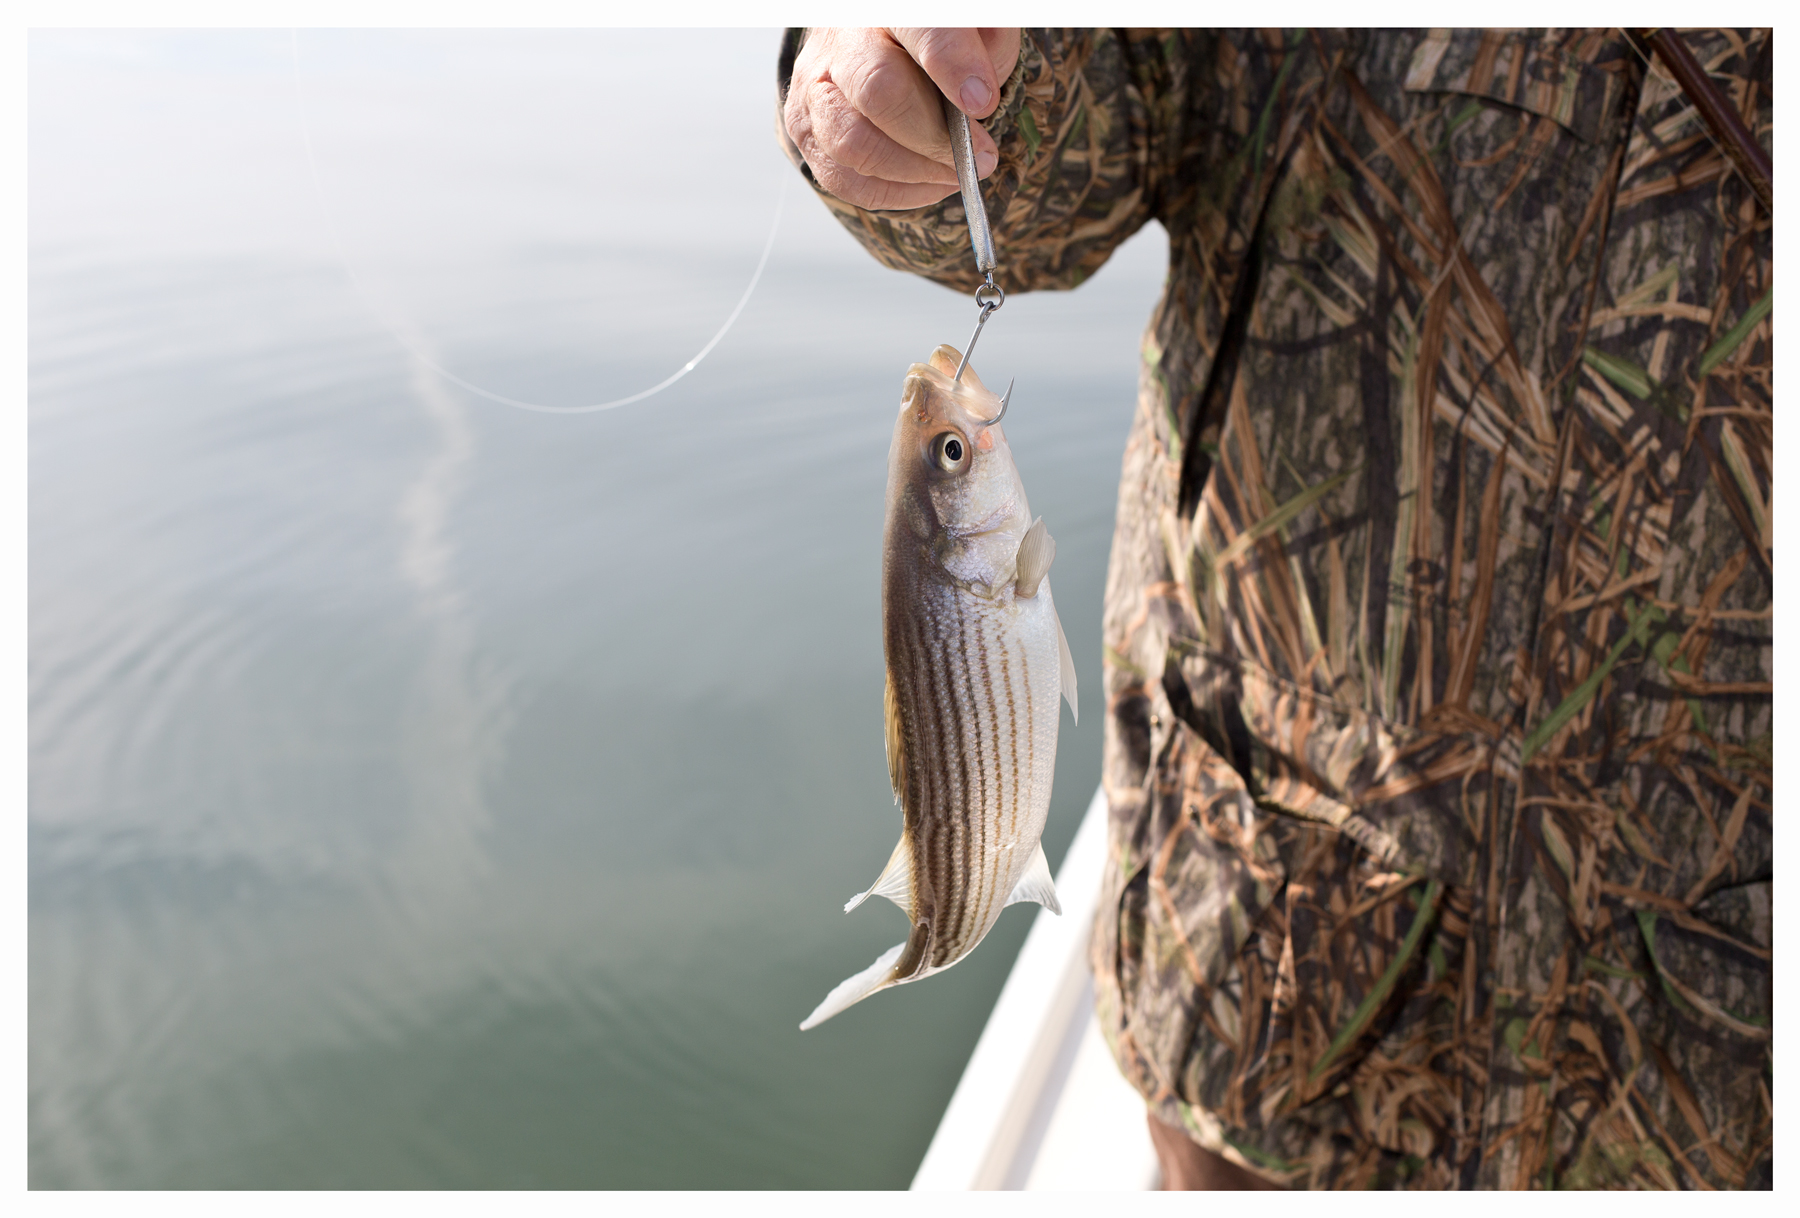 Hooked striped bass; Chesapeake Bay; Eastern Shore of Virginia; December 2013